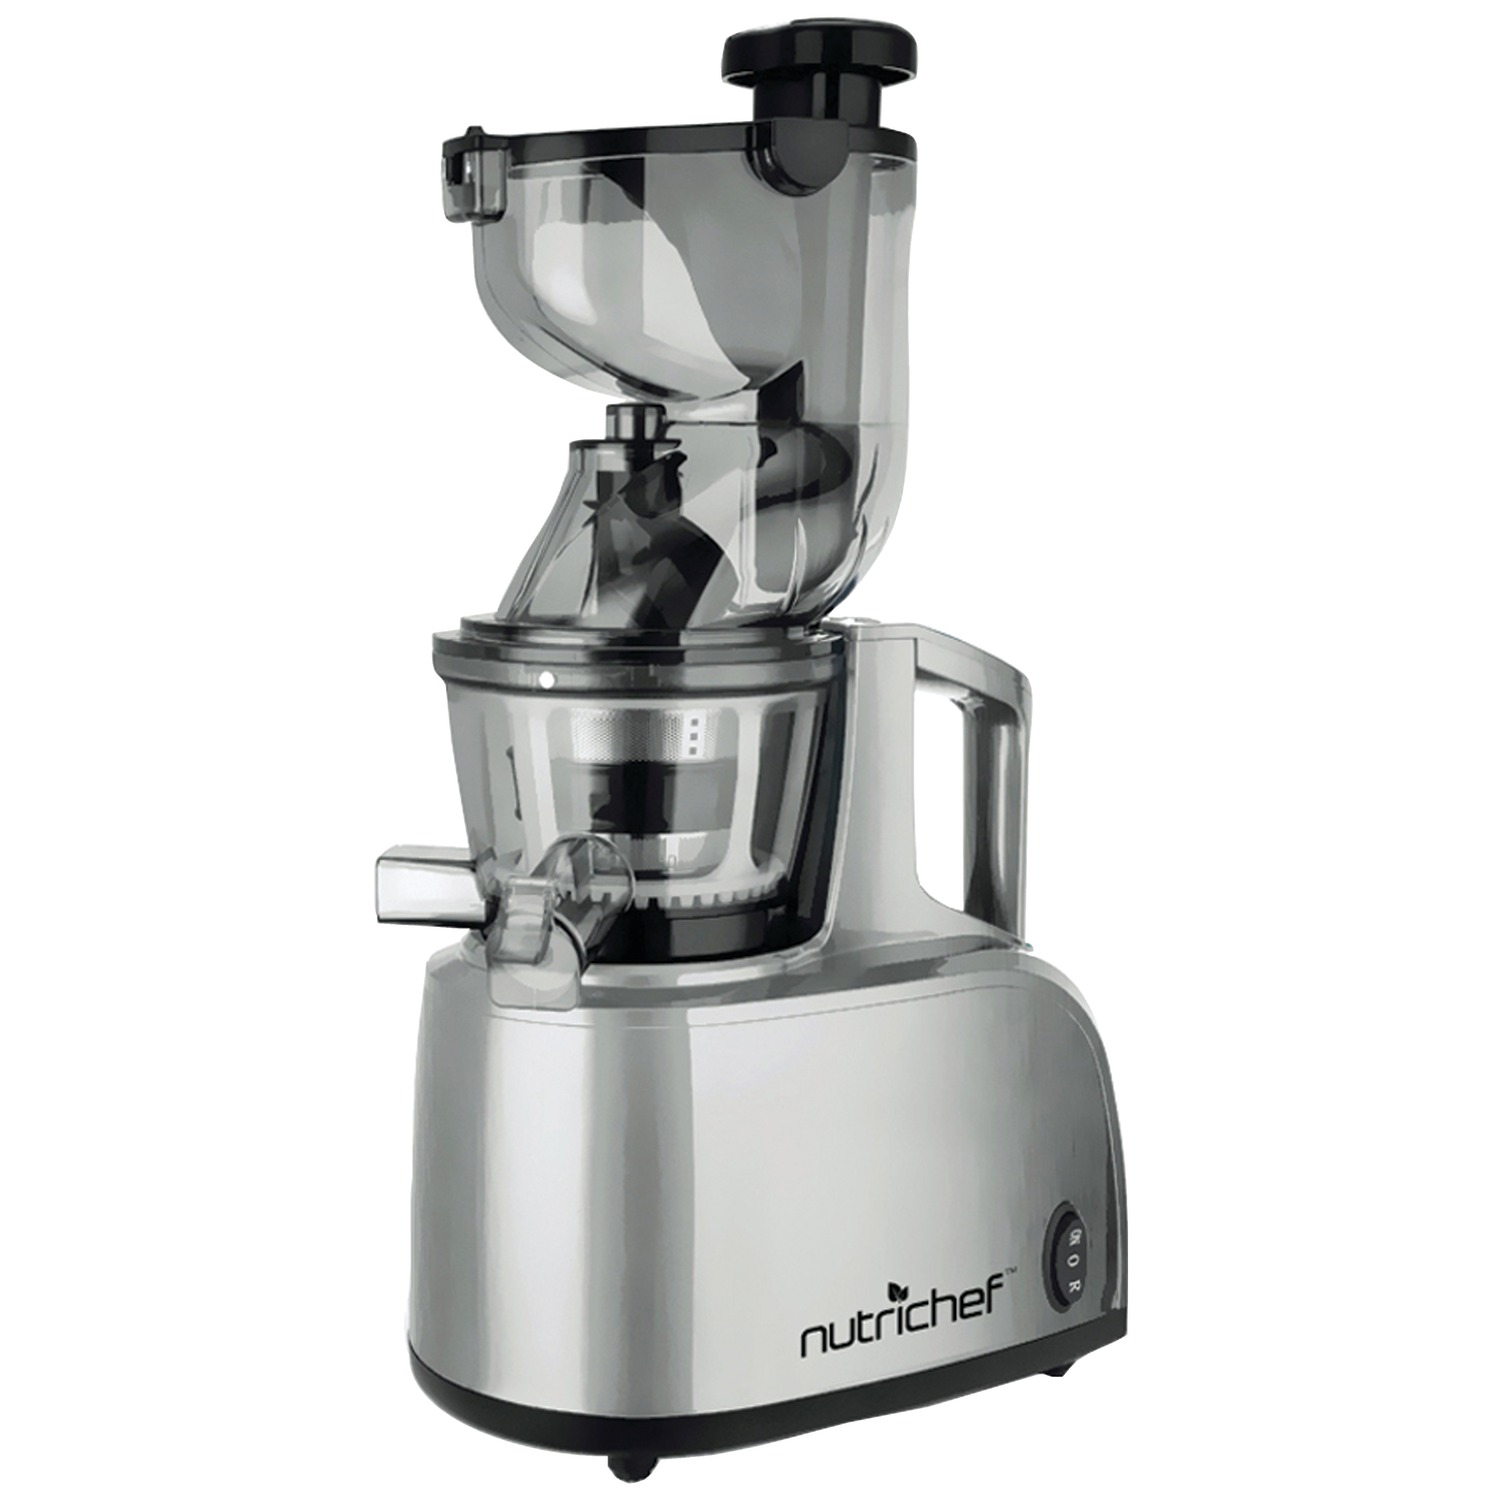 Professional Masticating Slow Juicer : NUTRICHEF PKSJ40 Countertop Masticating Slow Juicer & Drink Maker